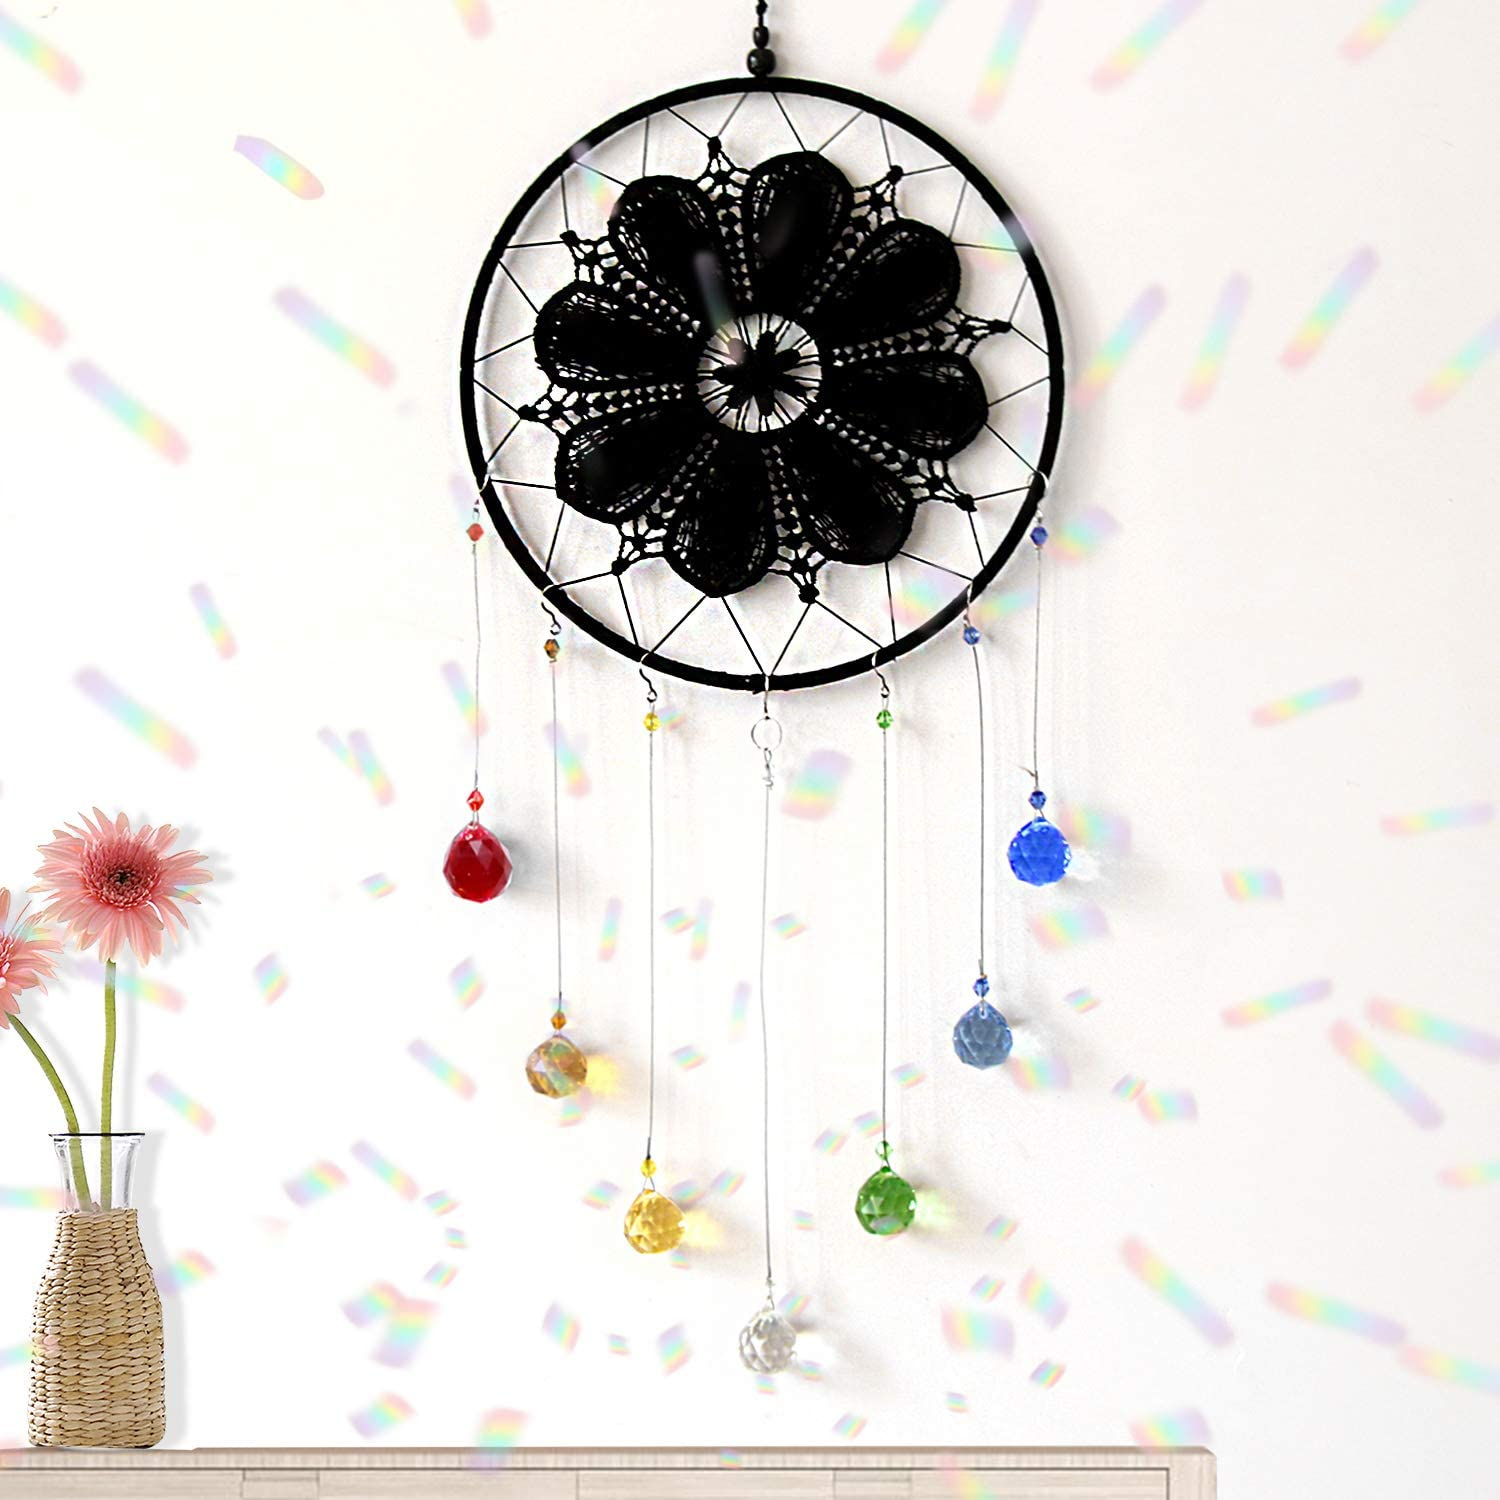 Cosylove Clear Cut Crystal Ball Prisms Chandelier Sun Catcher, Hanging Crystals Ornament Home Garden Office Decoration with Gift Box,Christmas Wedding Pendant Round Beautiful Dark Dreamcatcher